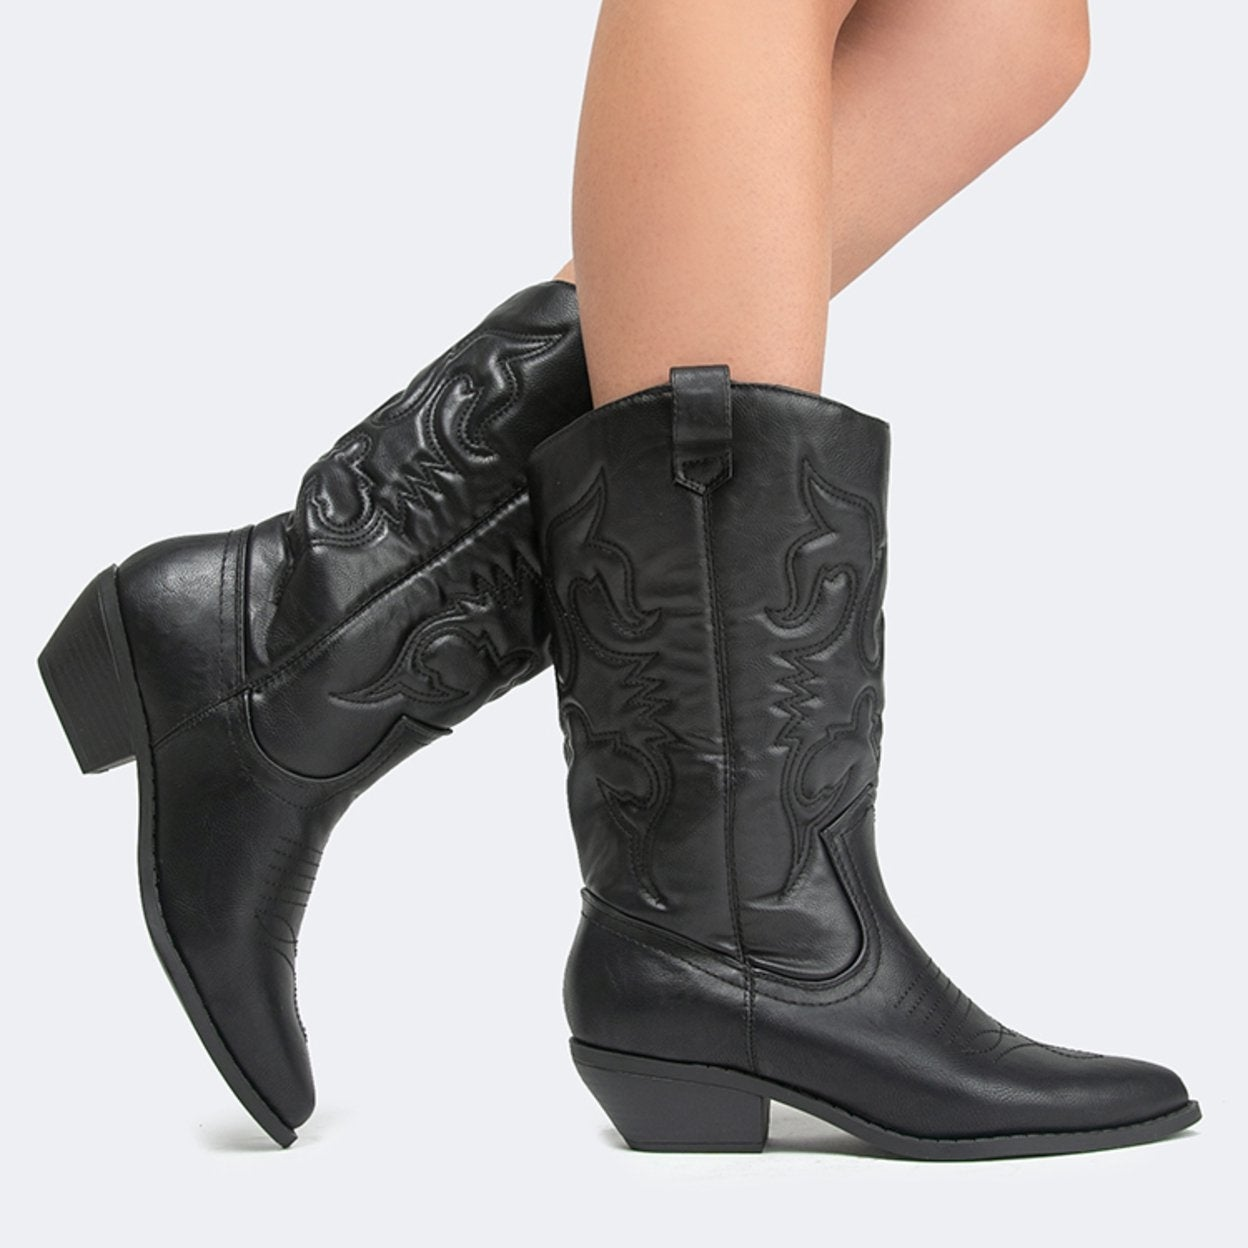 49aae5087 Buy Size 10 Women's Boots Online at Overstock | Our Best Women's Shoes Deals